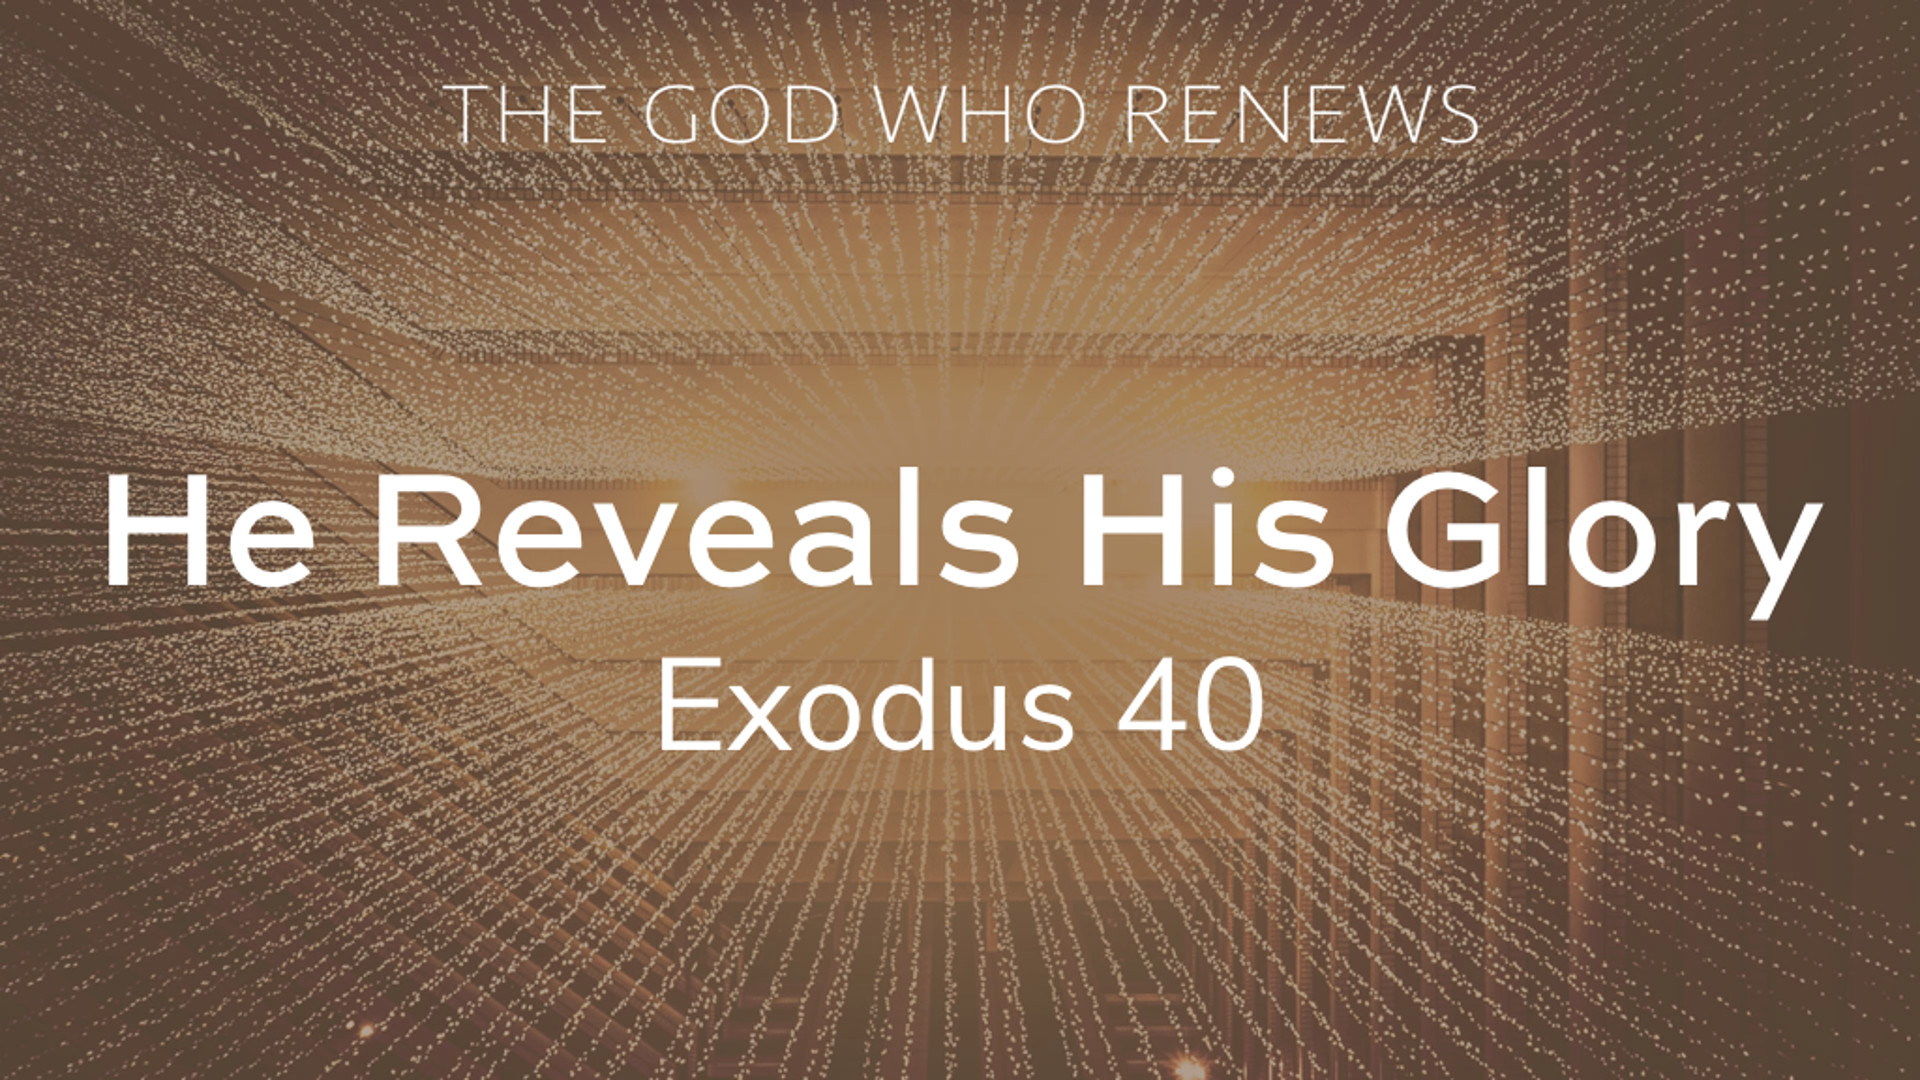 Exodus 40 - He Reveals His Glory.jpg